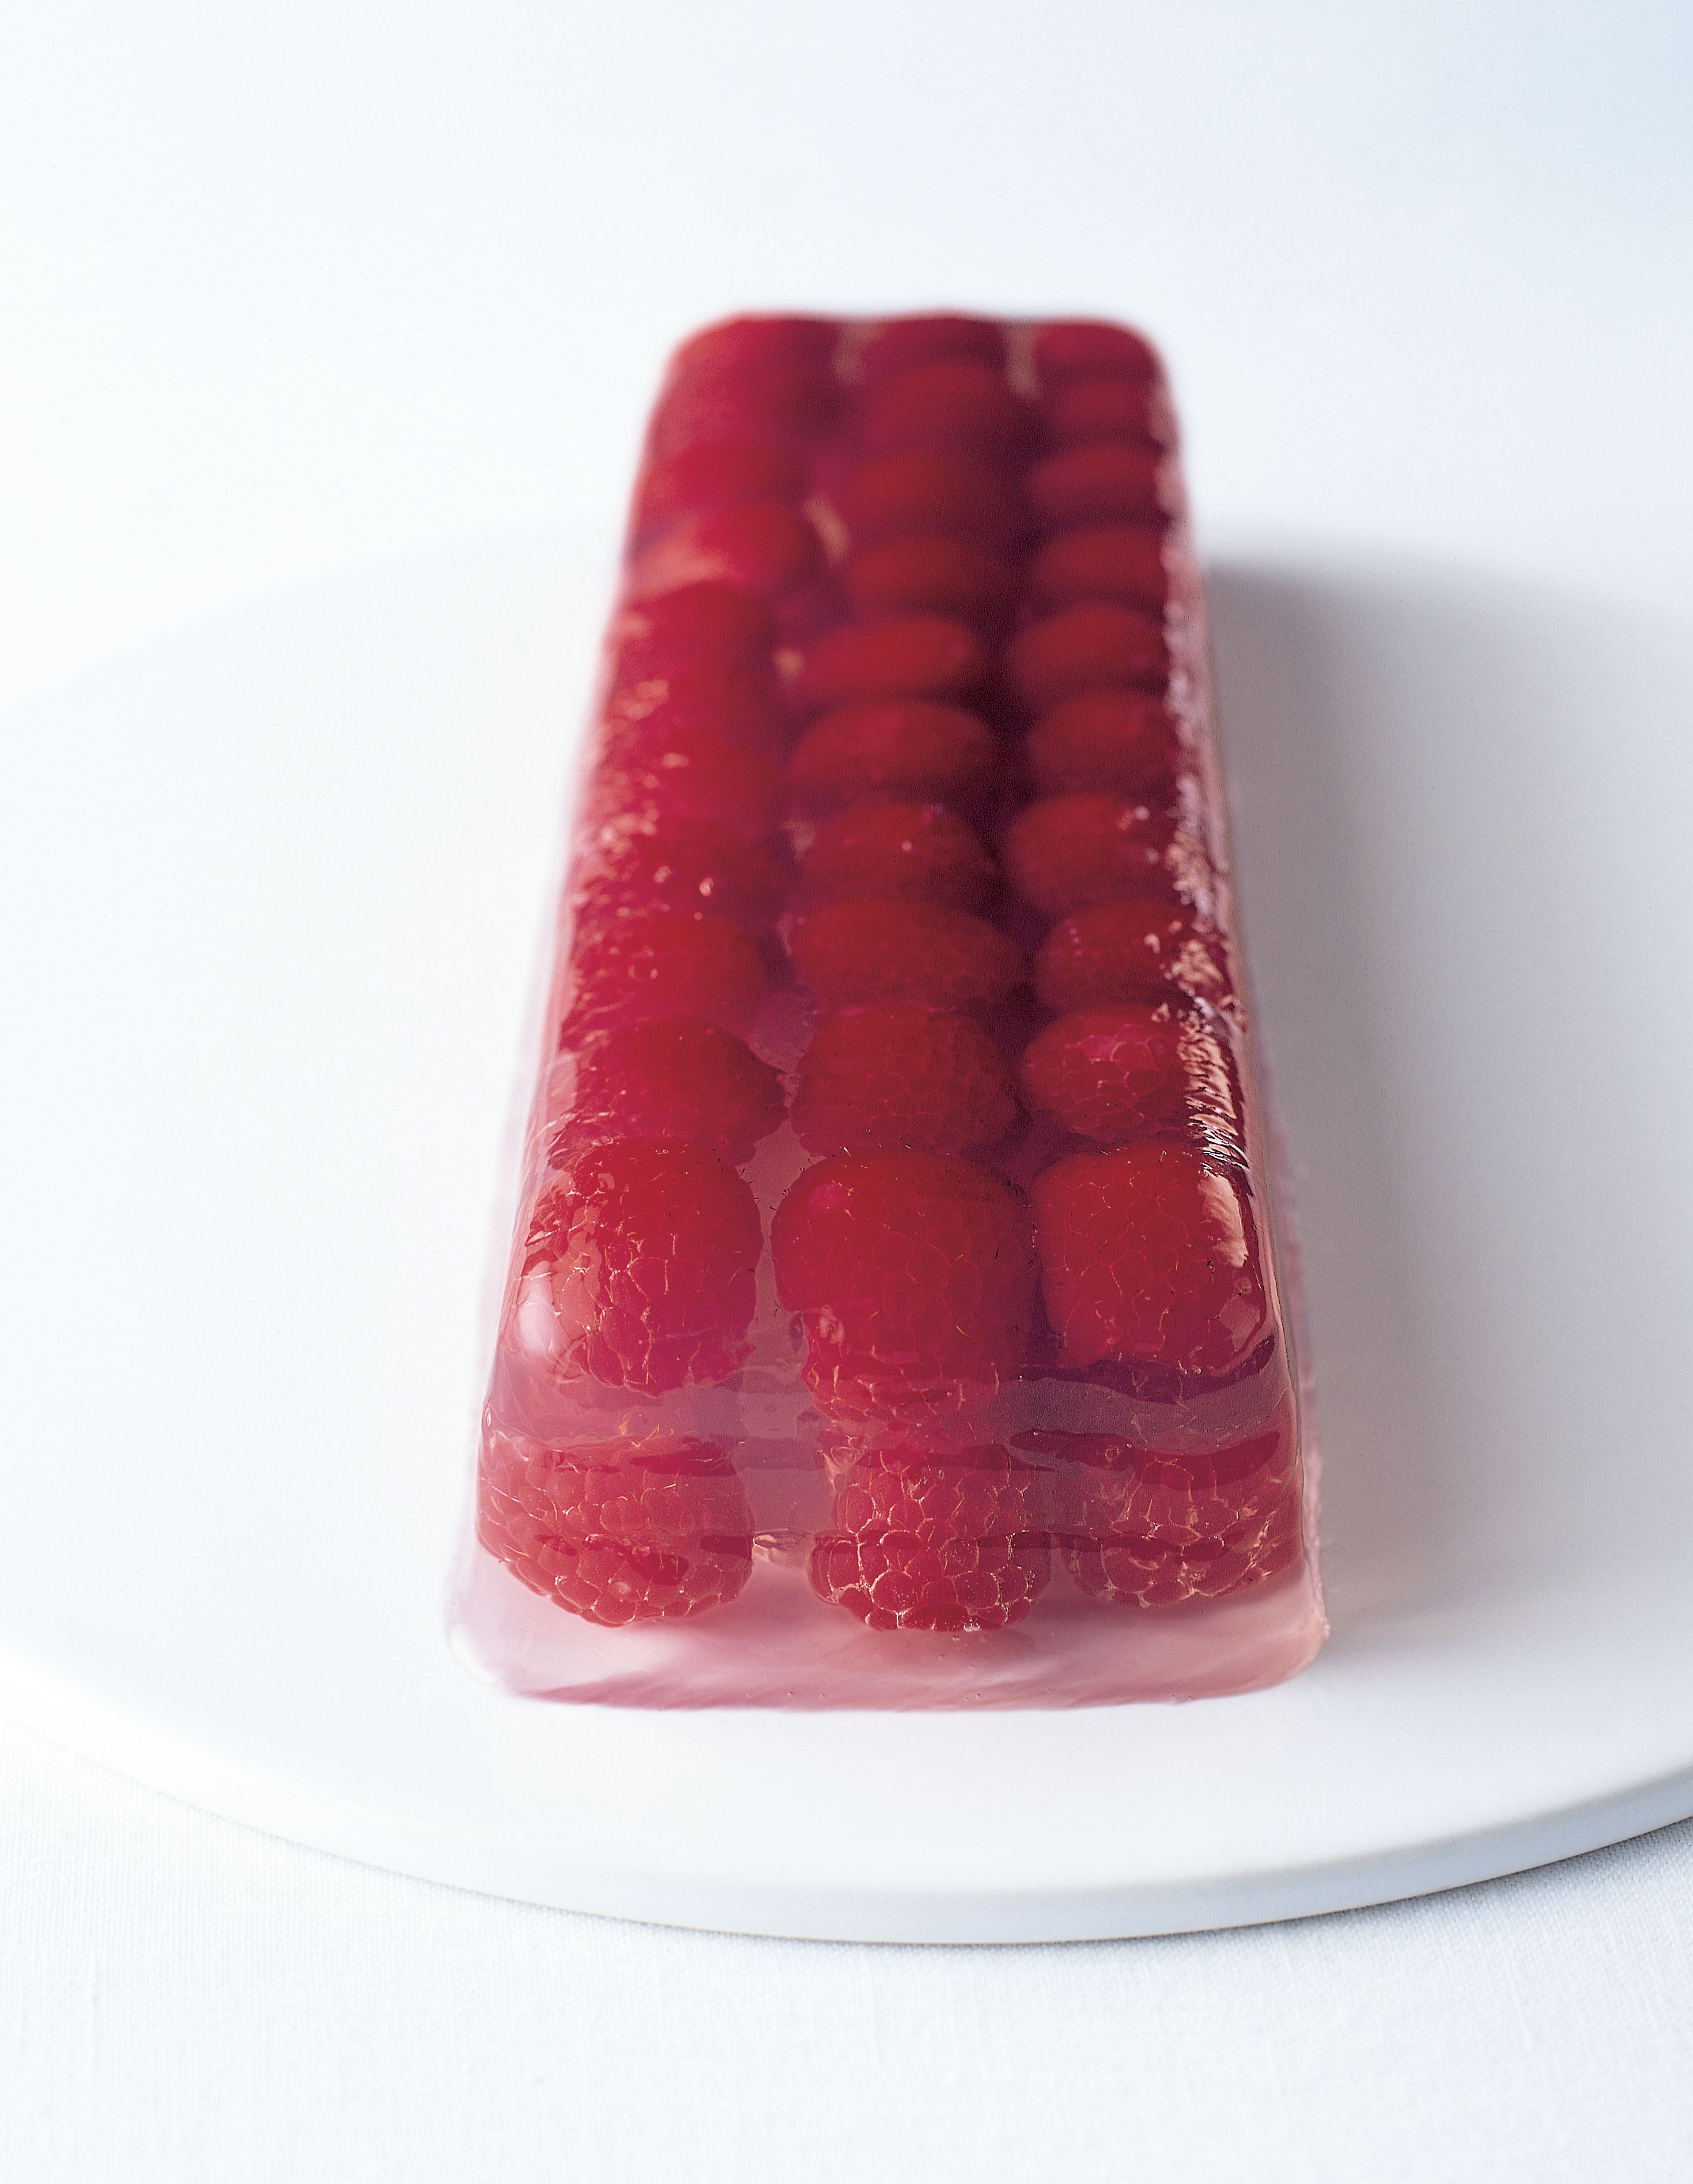 Jellied raspberry and vodka terrine with lime syrup